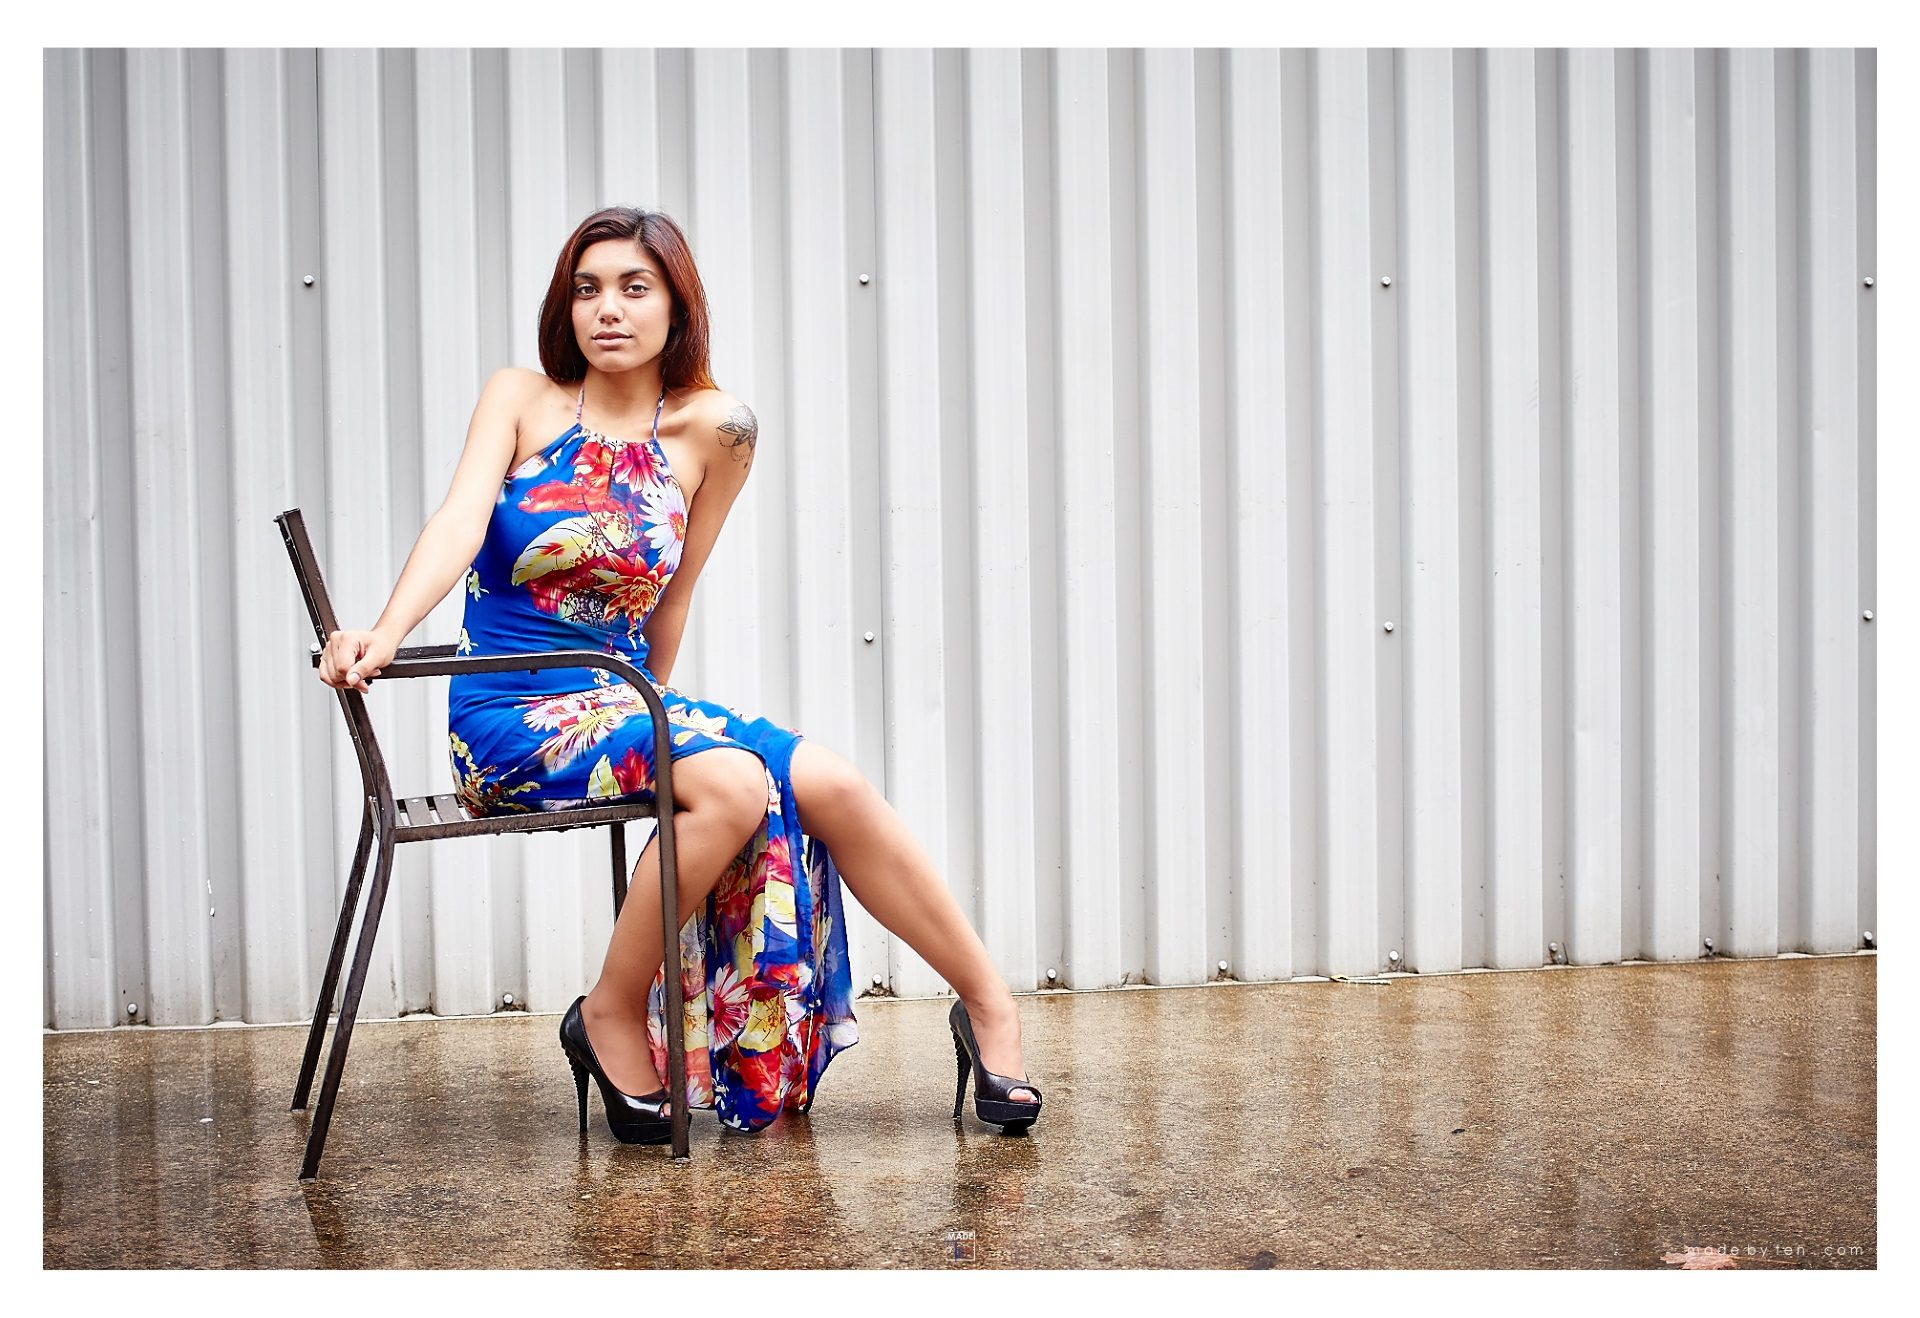 Woman Rain Sitting Fashion Editorial - GTA Women Lifestyle Photography